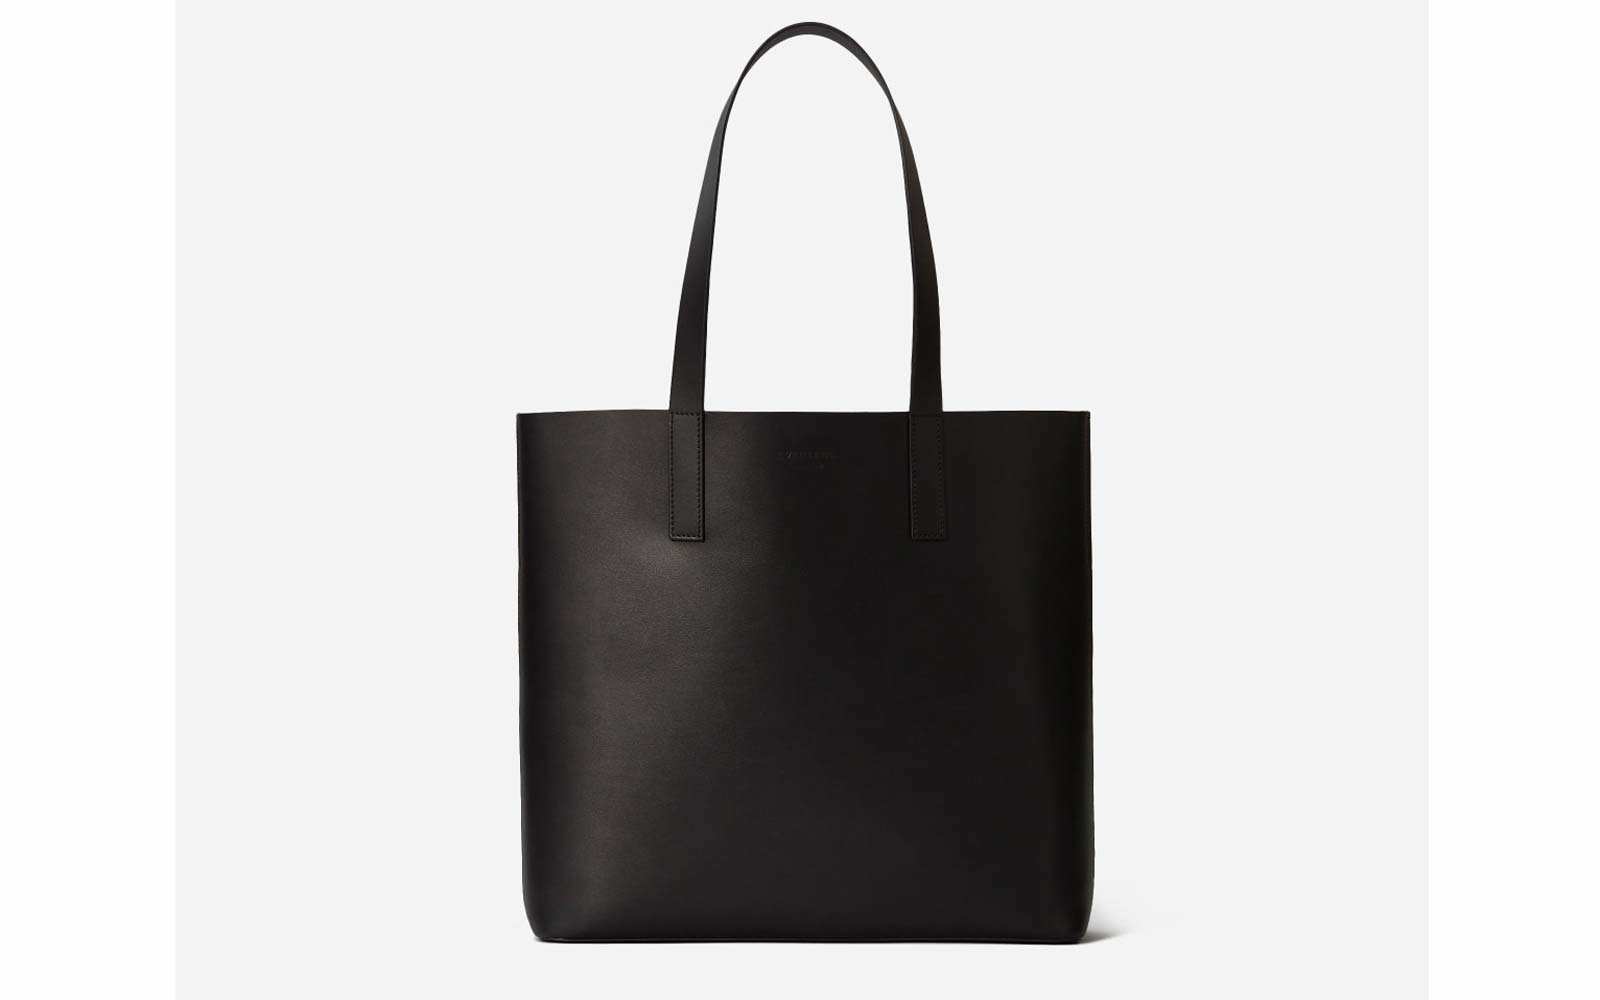 The Day Square Tote in Black